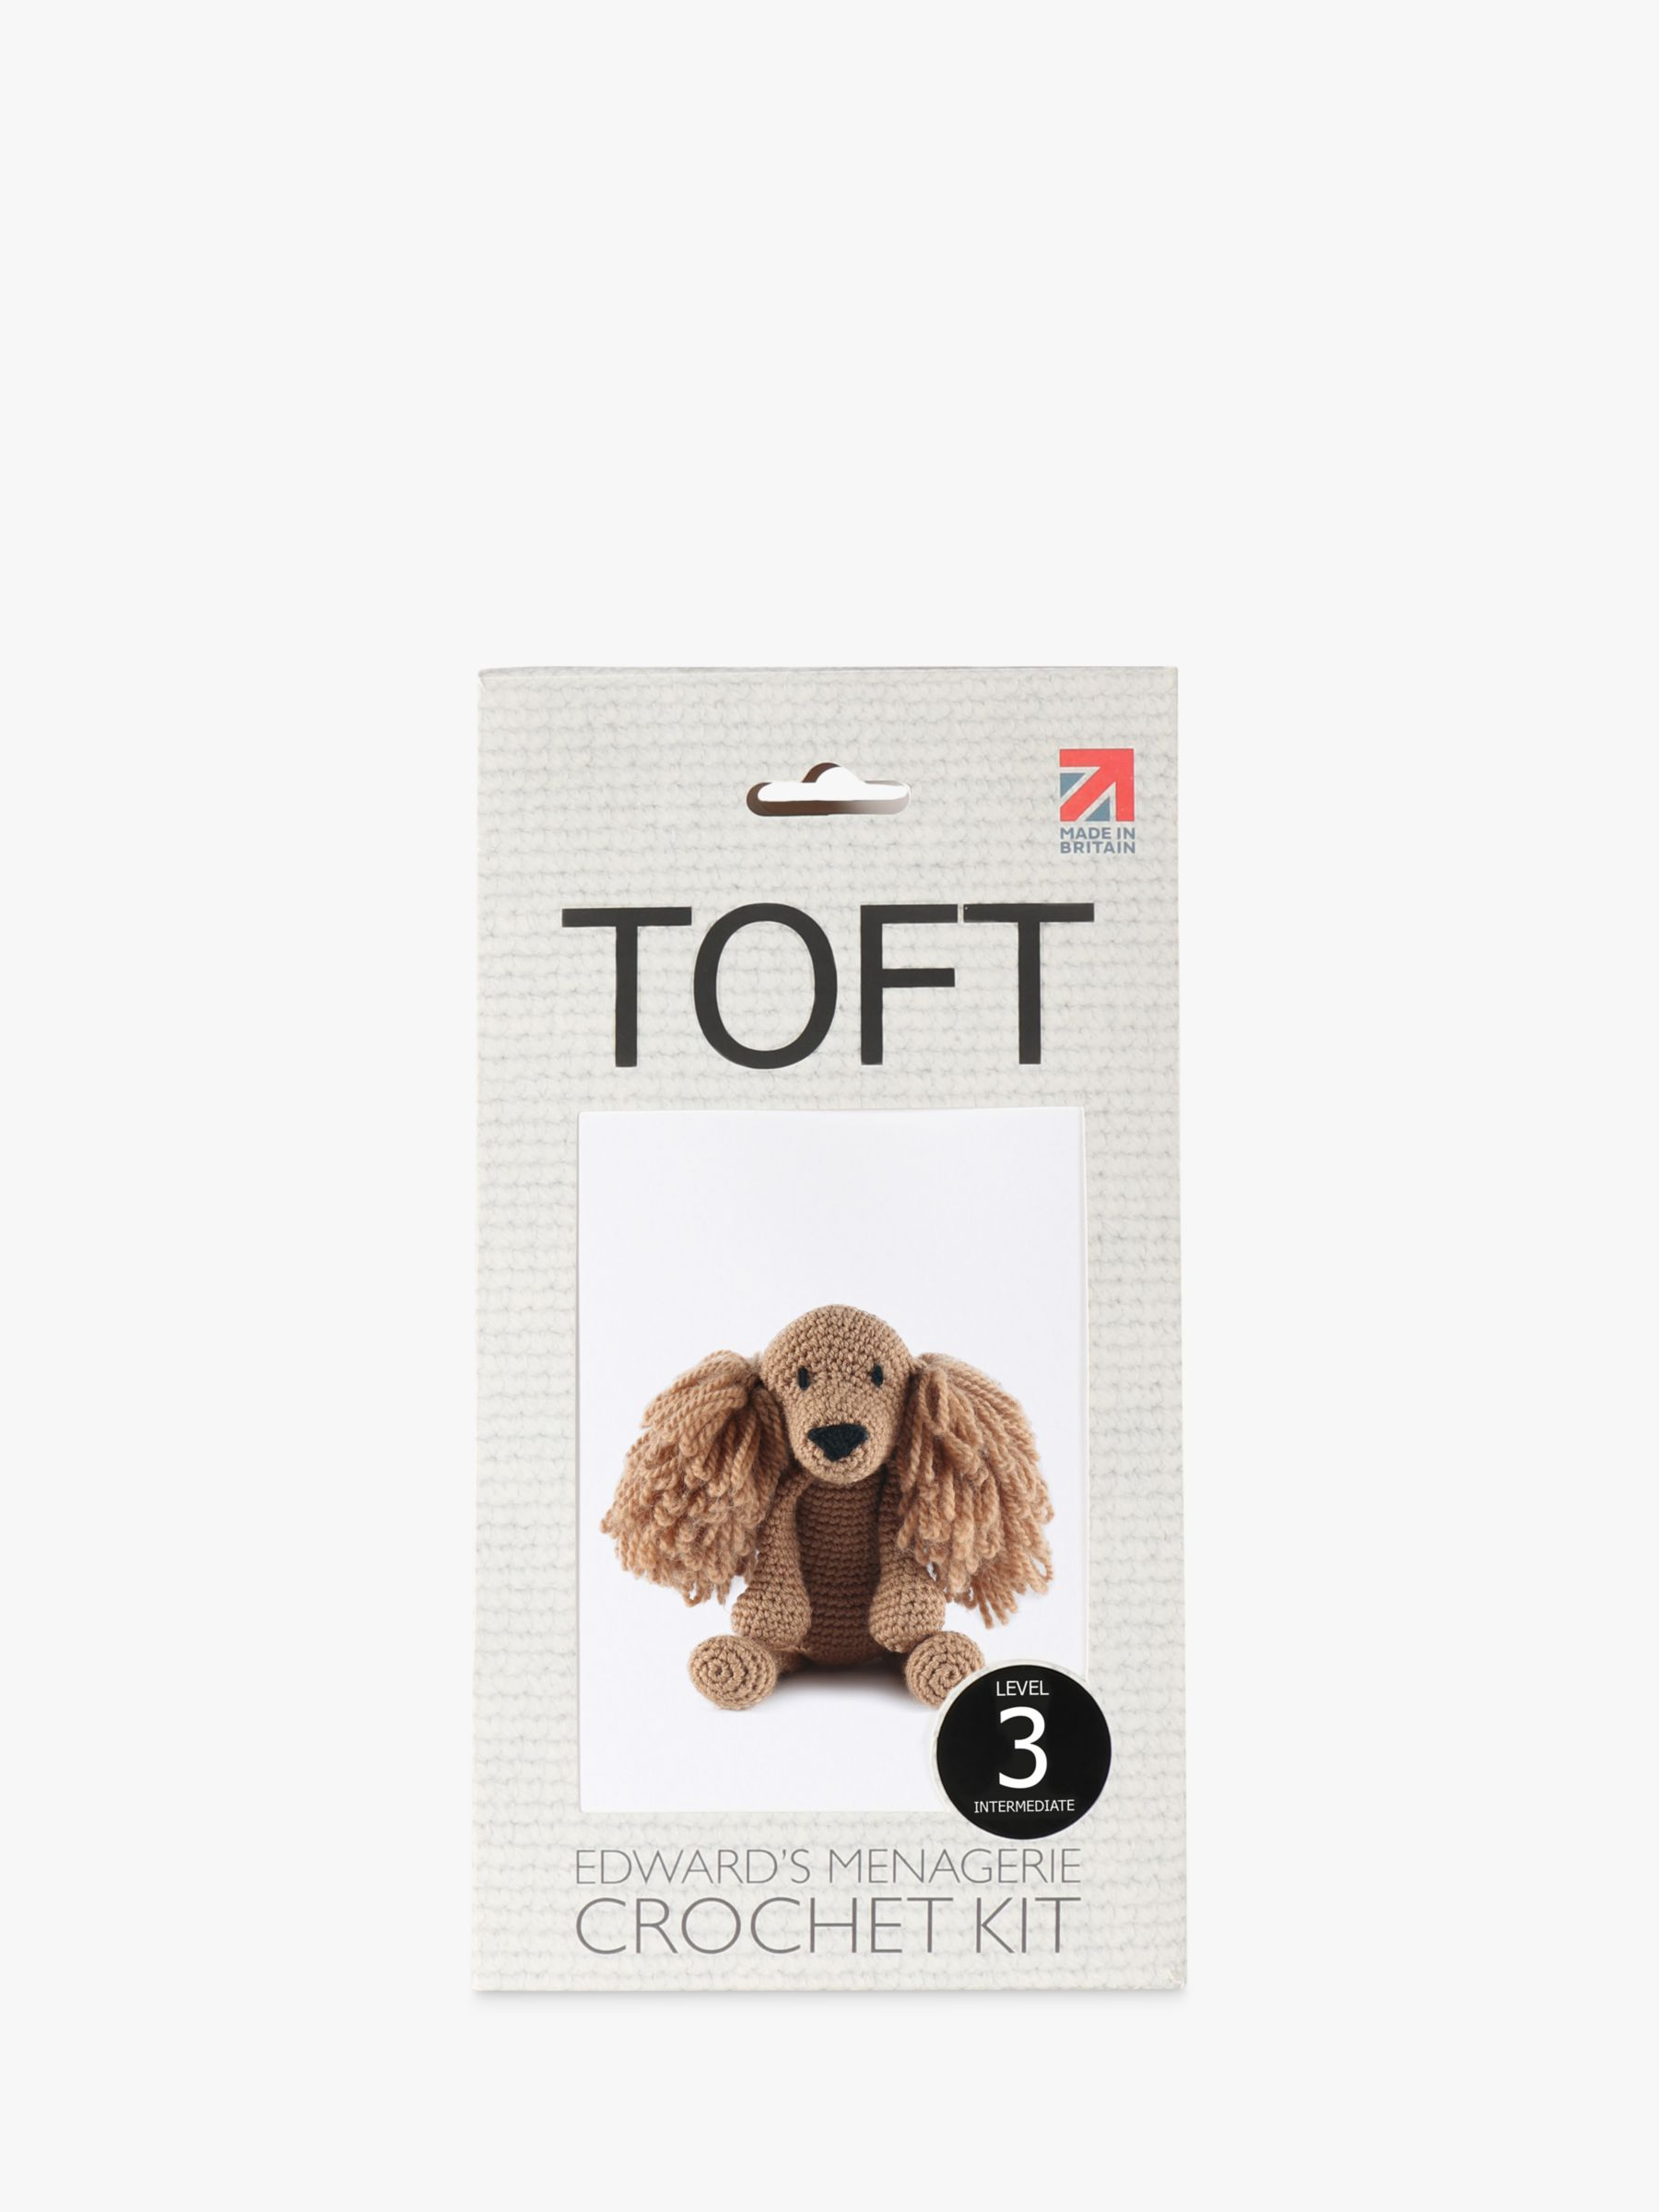 TOFT Saxon The Cocker Spaniel Crochet Kit